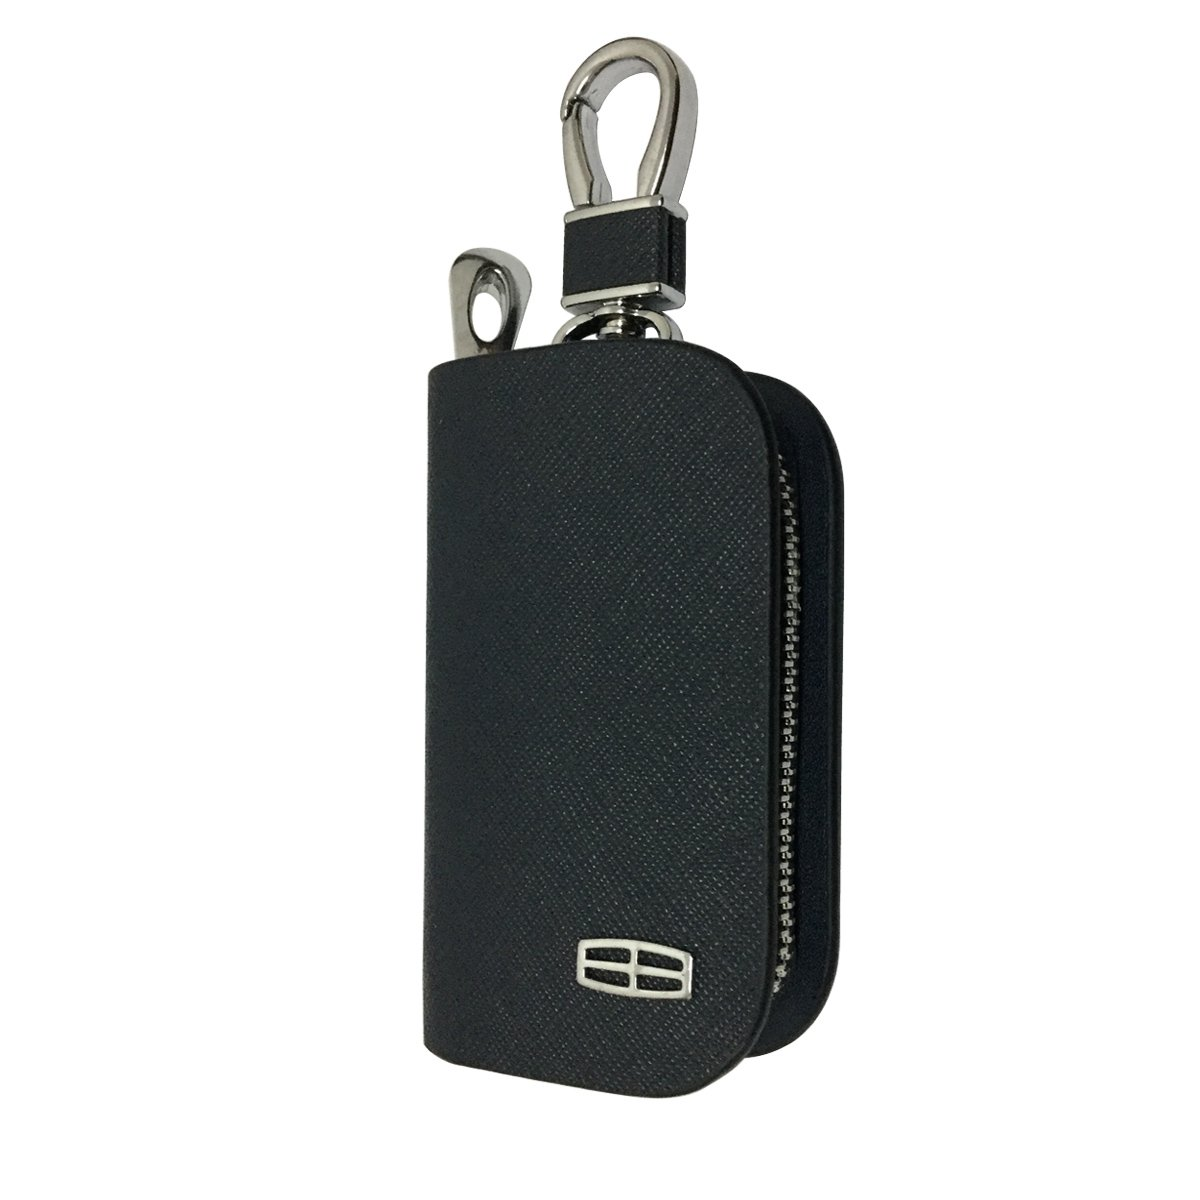 New 1pcs Mesh Black Leather Car Key Wallet Zipper Case Keychain Coin Holder Metal Hook Bag Collection For Lincoln Car Vehicle Auto Lover